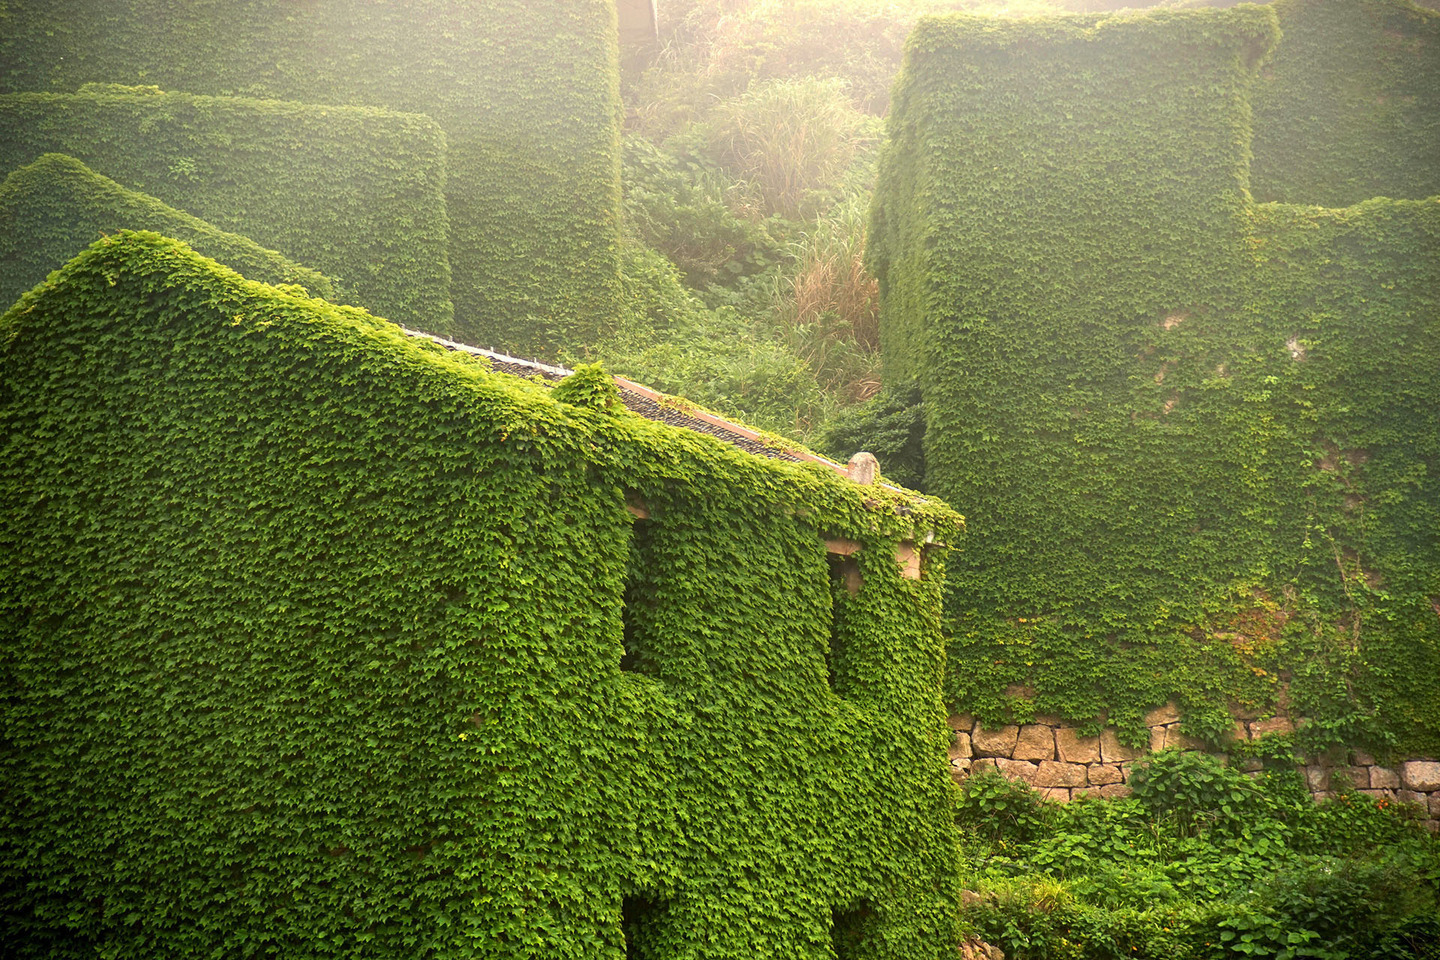 ZHOUSHAN, CHINA - MAY 31:  (CHINA OUT) Houses are covered with creepers at a deserted village on Shengshan Island on May 31, 2015 in Zhoushan, China.  (Photo by ChinaFotoPress/ChinaFotoPress via Getty Images)